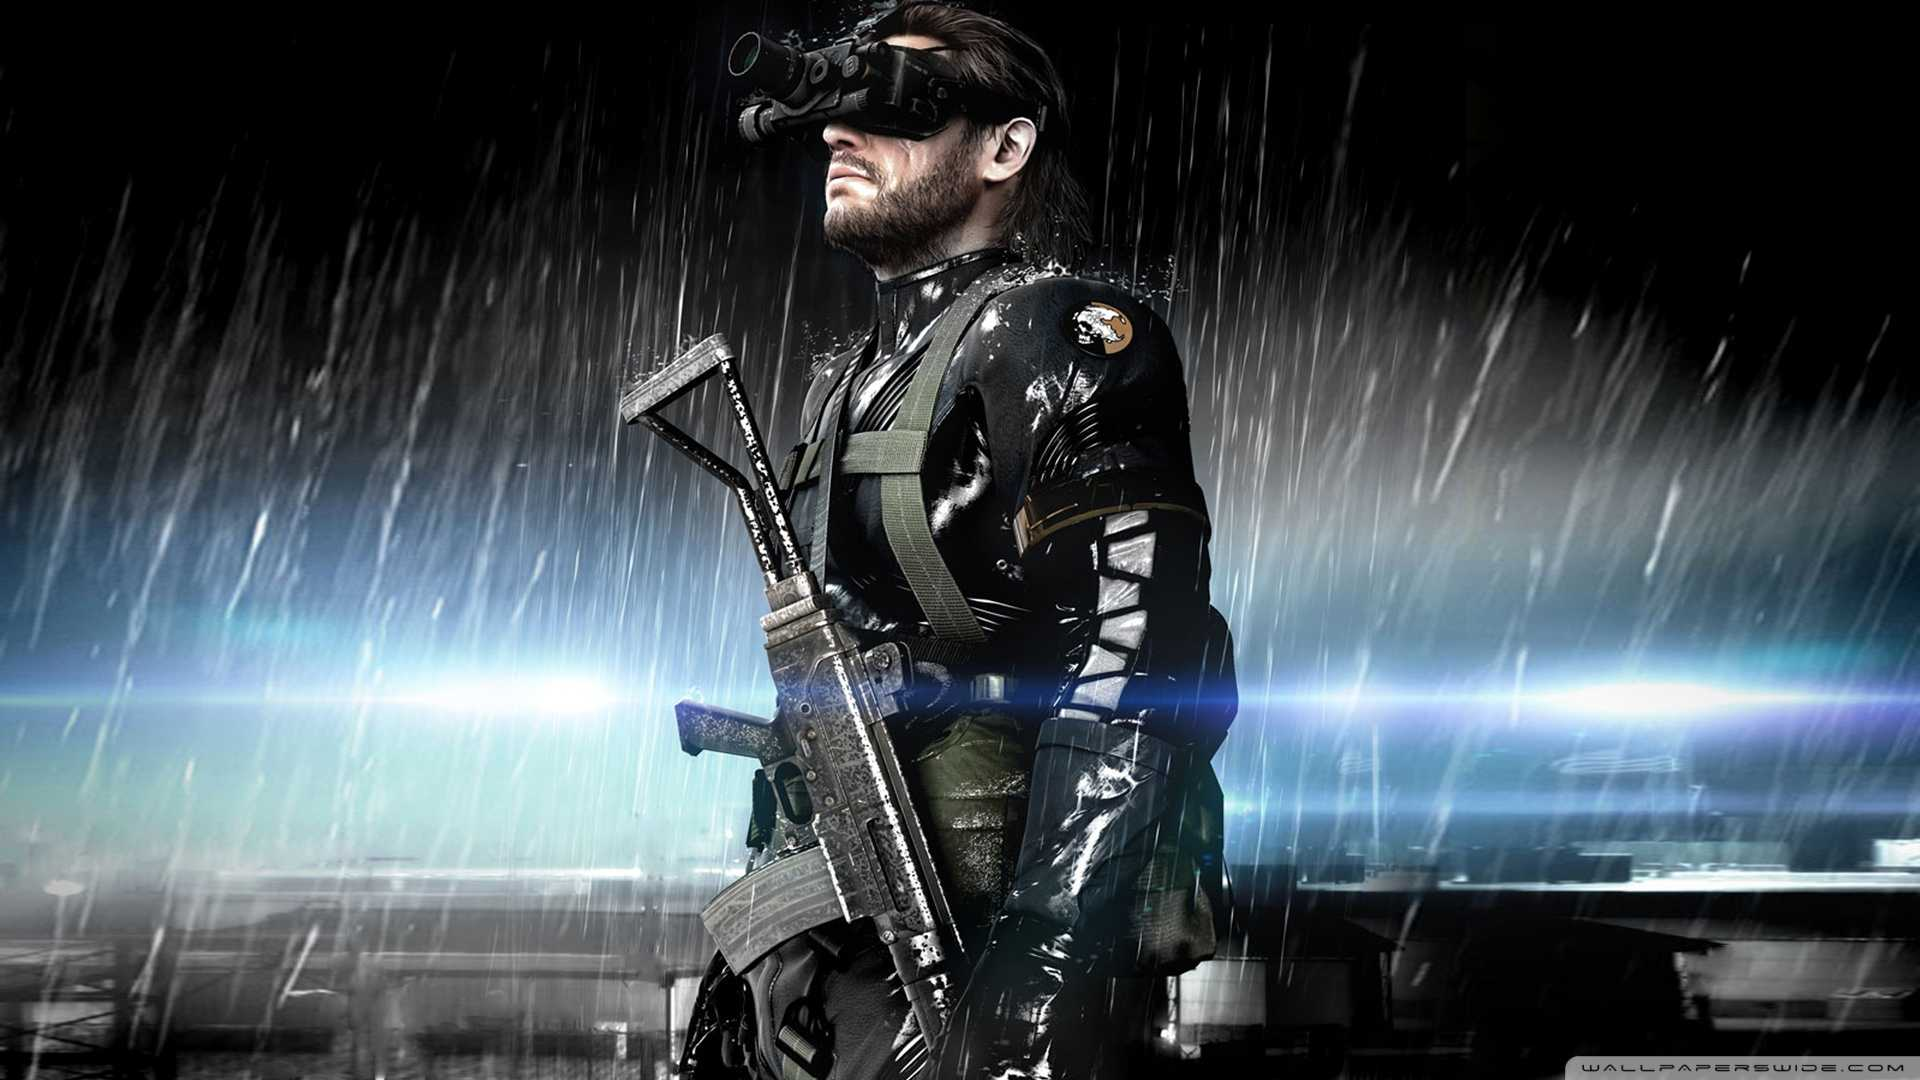 TGS '13: Metal Gear Solid Ground Zeroes demo for TGS